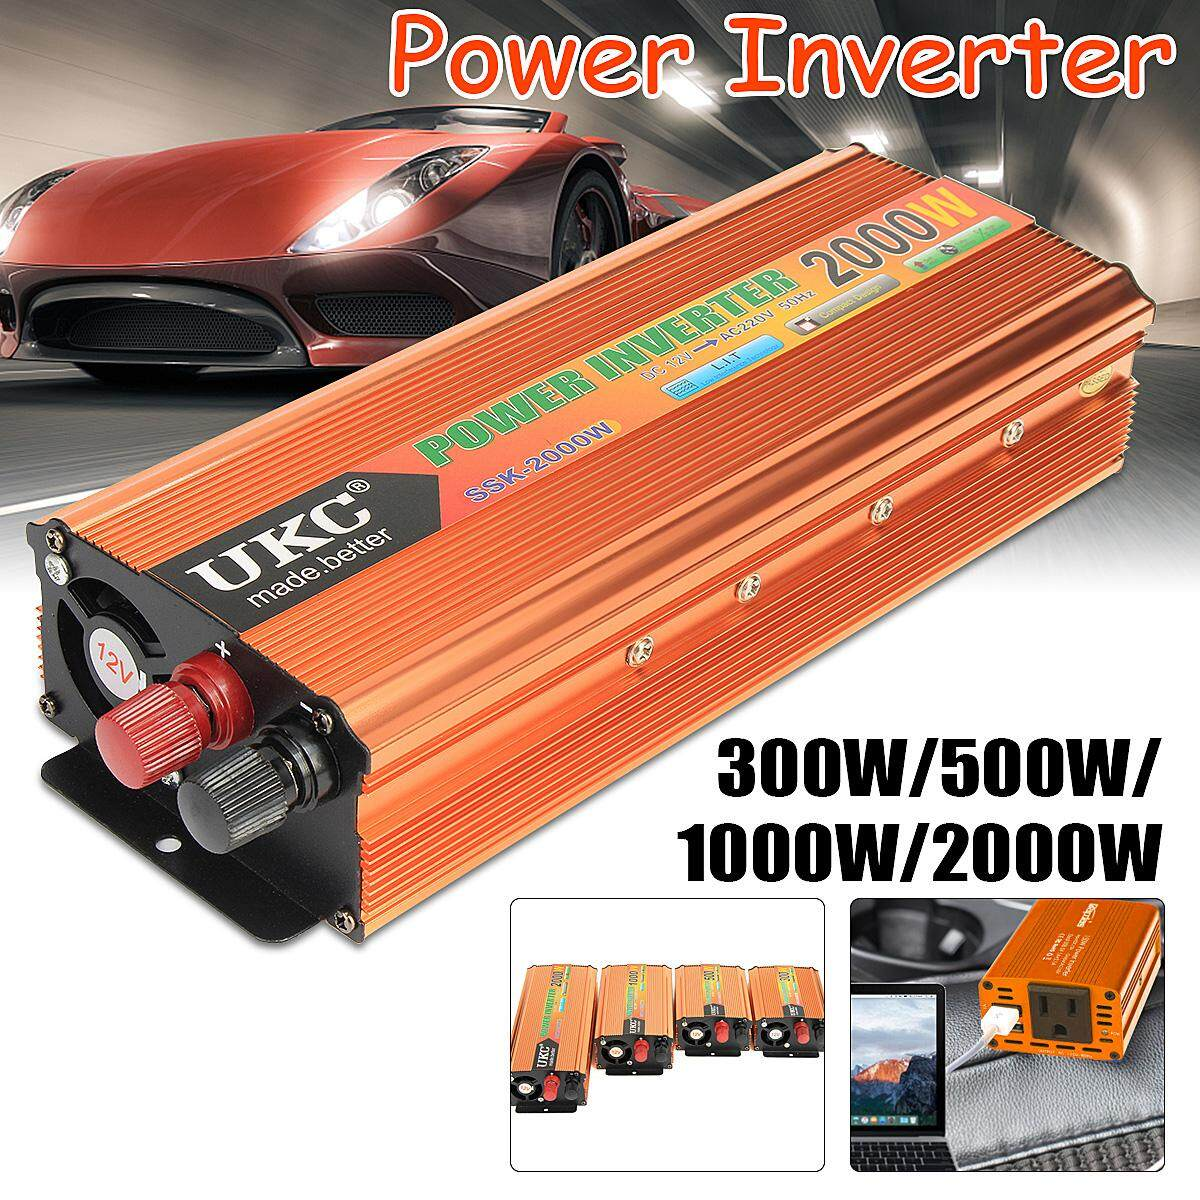 Car Inverter For Sale Power Converter Online Brands Prices Circuit 3000w 12vdc To 230vac 4000w Peak Surge Boat 12v 220v Adapter New Intl